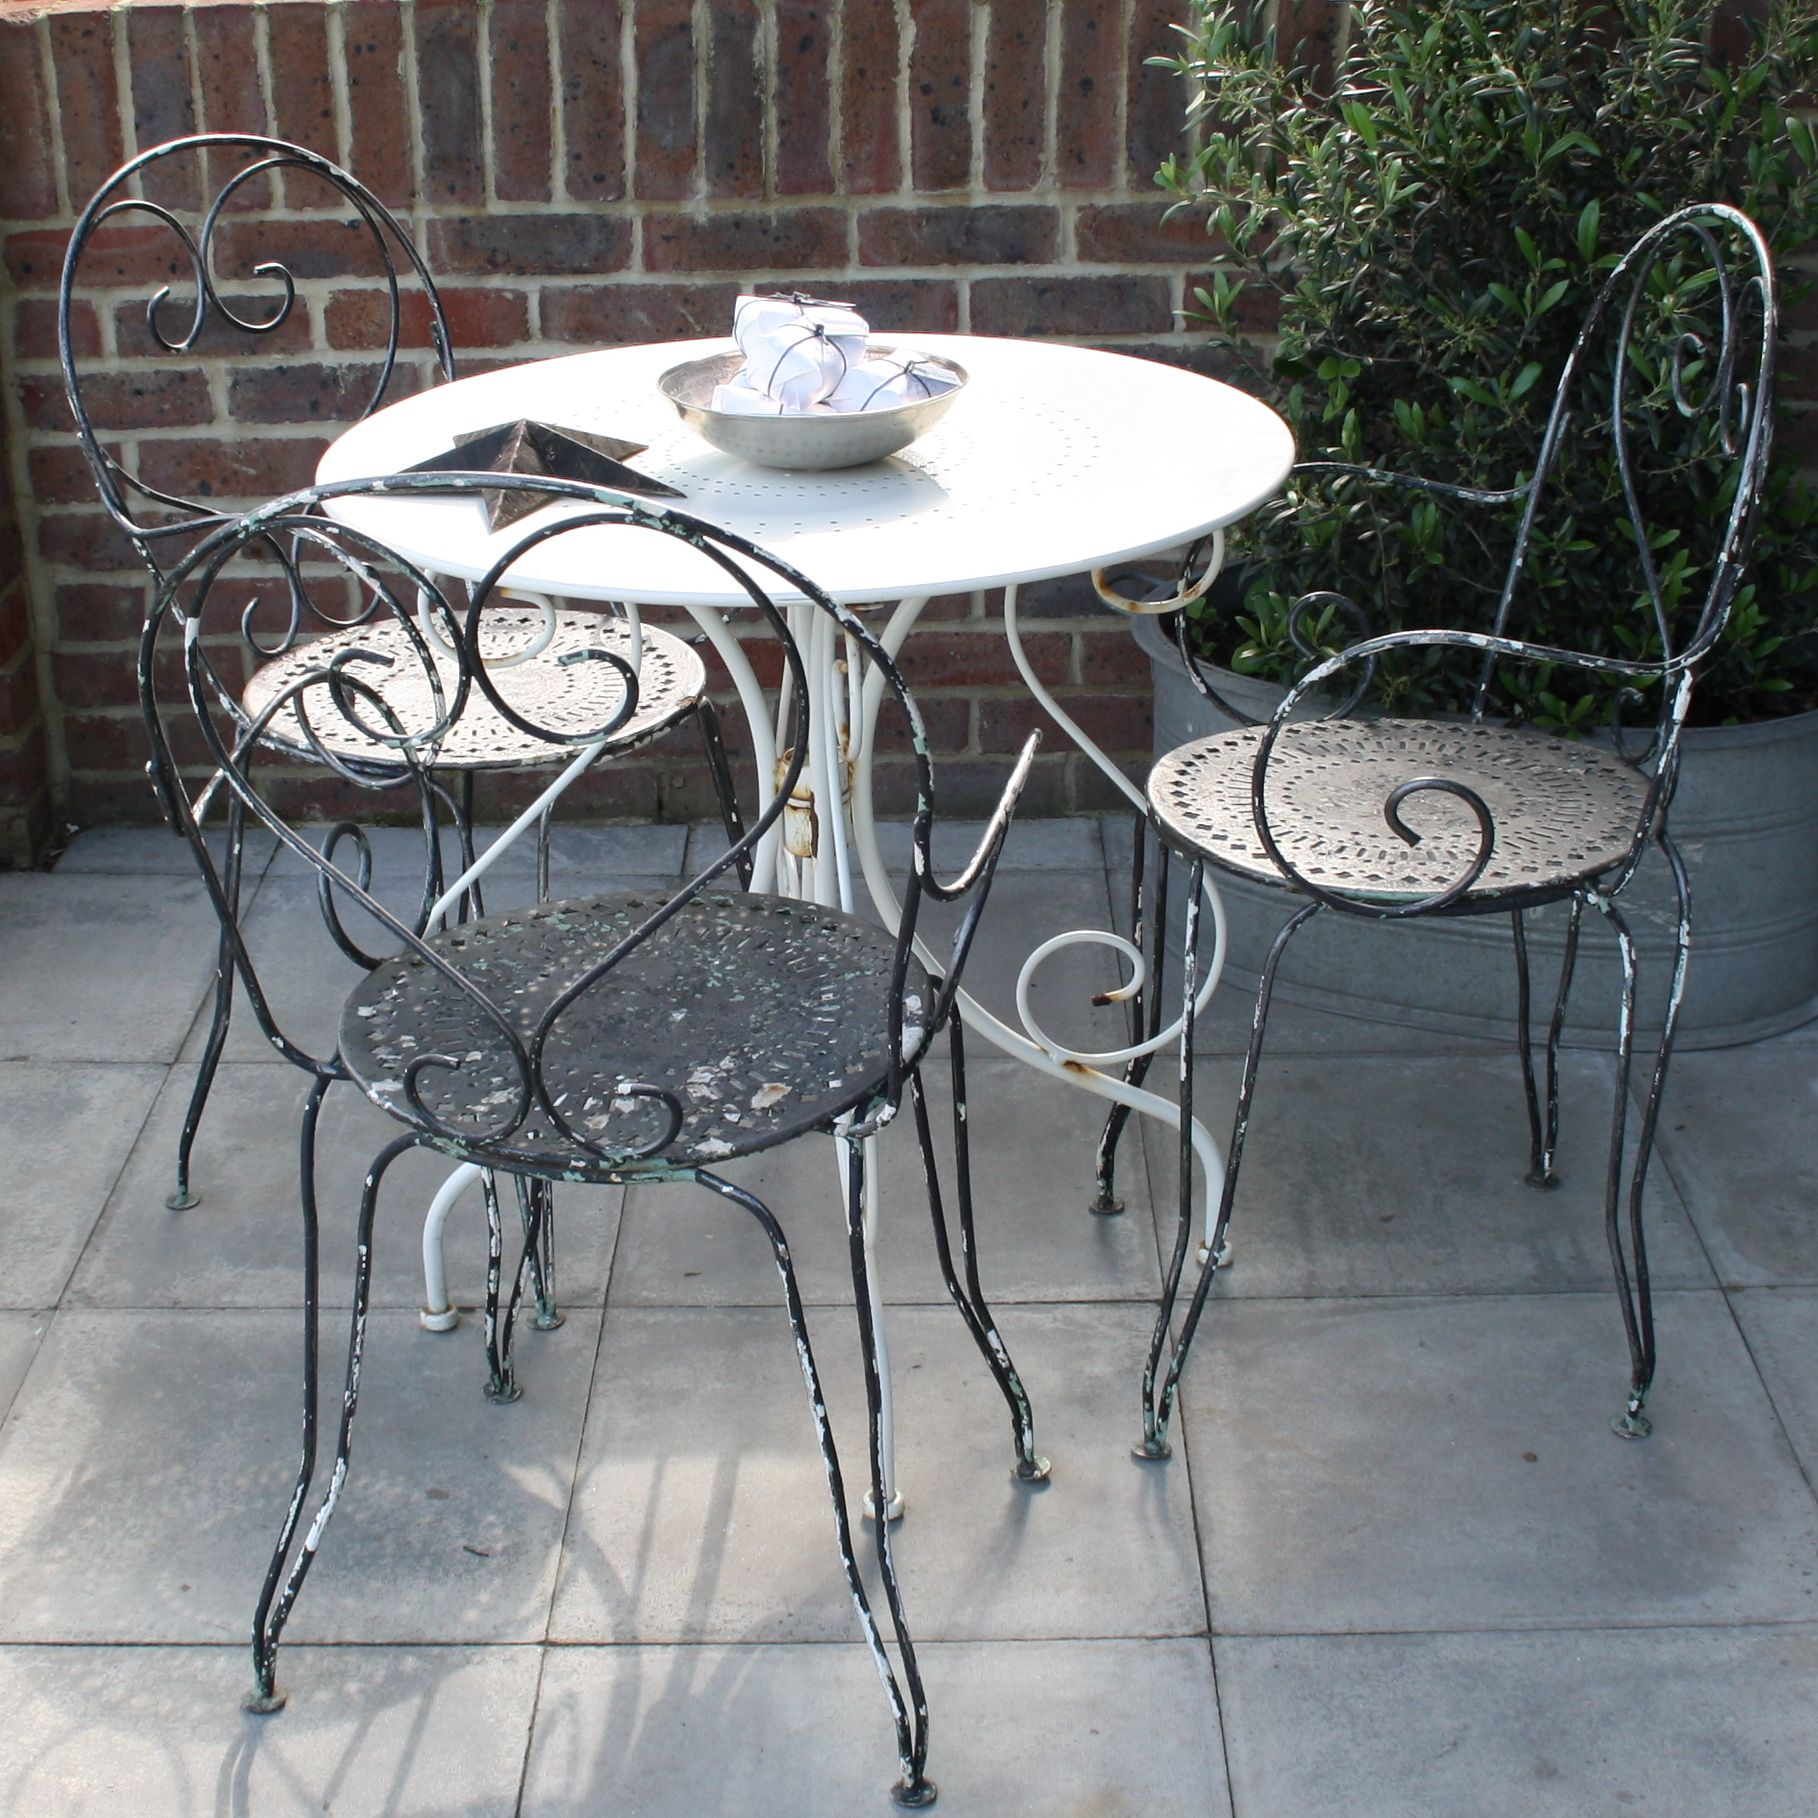 french bistro table and chairs uk evacuation chair rental vintage set www designvintage co porches